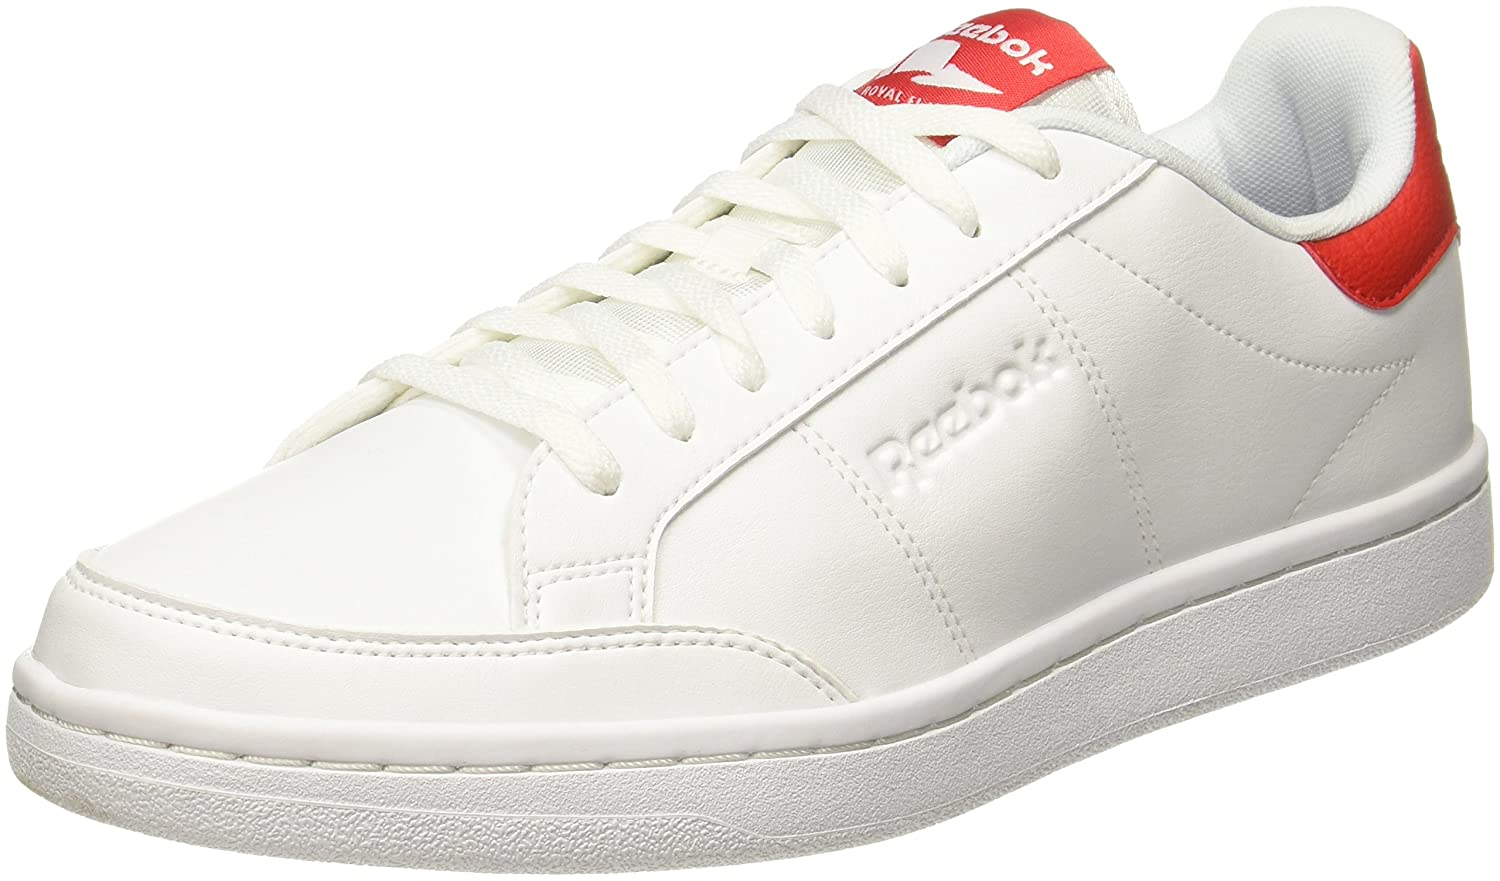 Reebok Herren Royal Smash Sneaker  45 EU|Wei? (White/Primal Red)